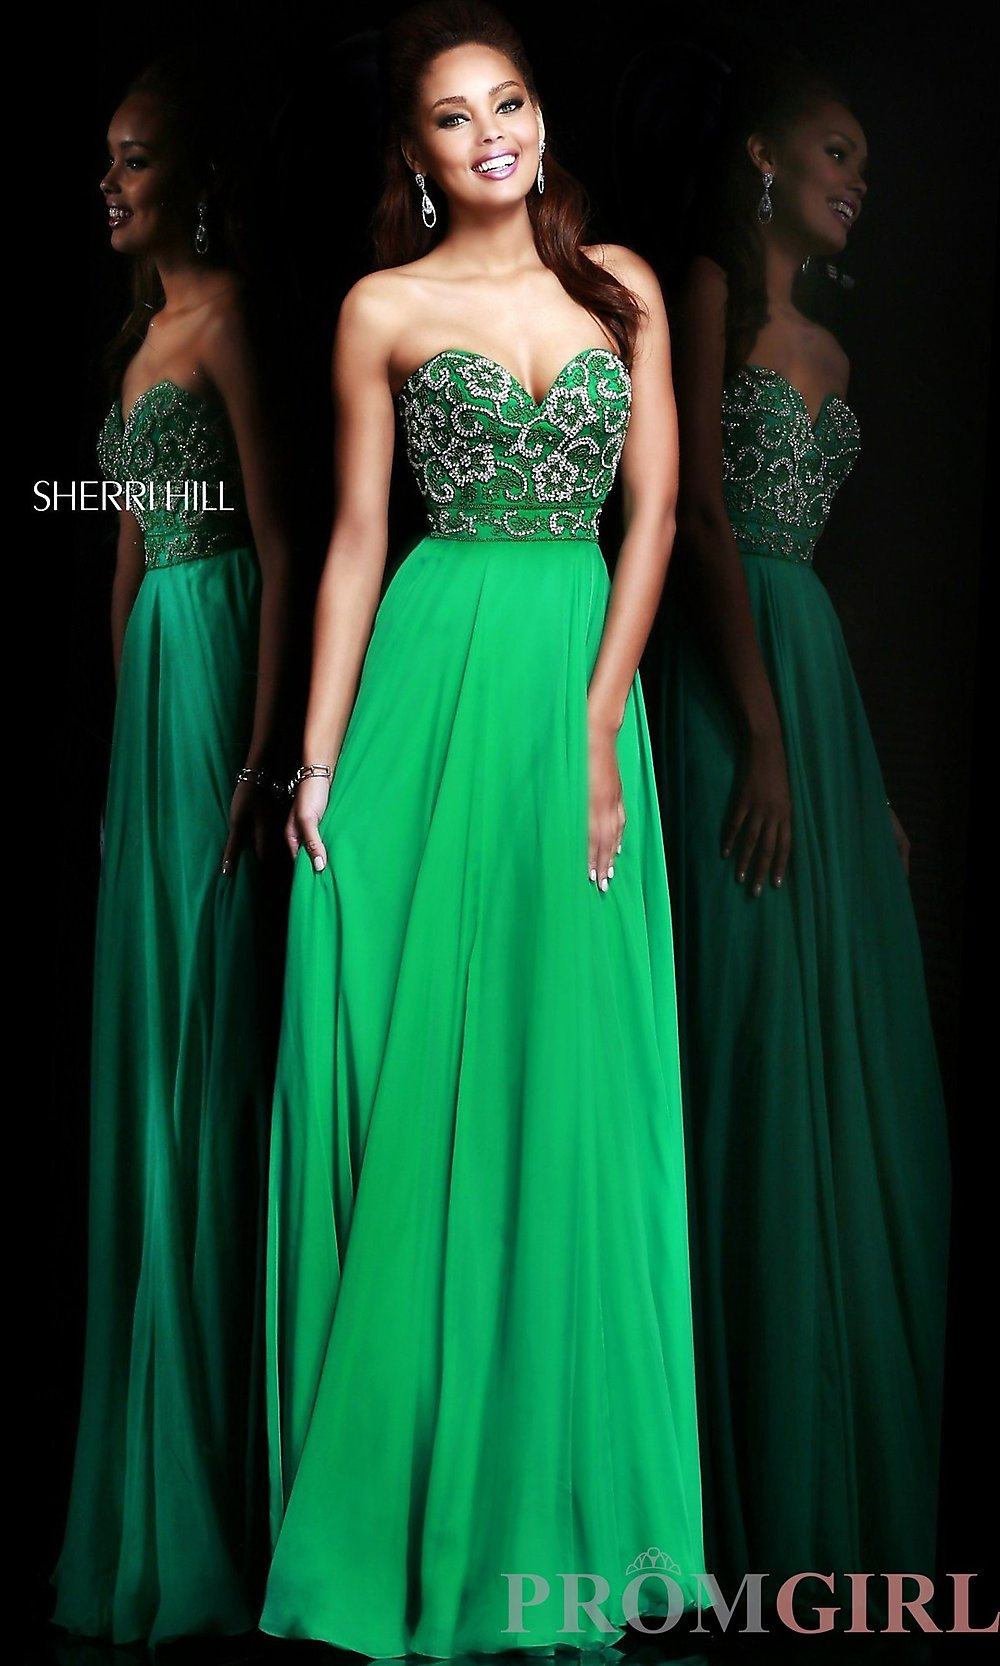 Latest Fancy Gowns, Prom and Cocktail dresses for Weddings and Parties 2014-2015 (6)